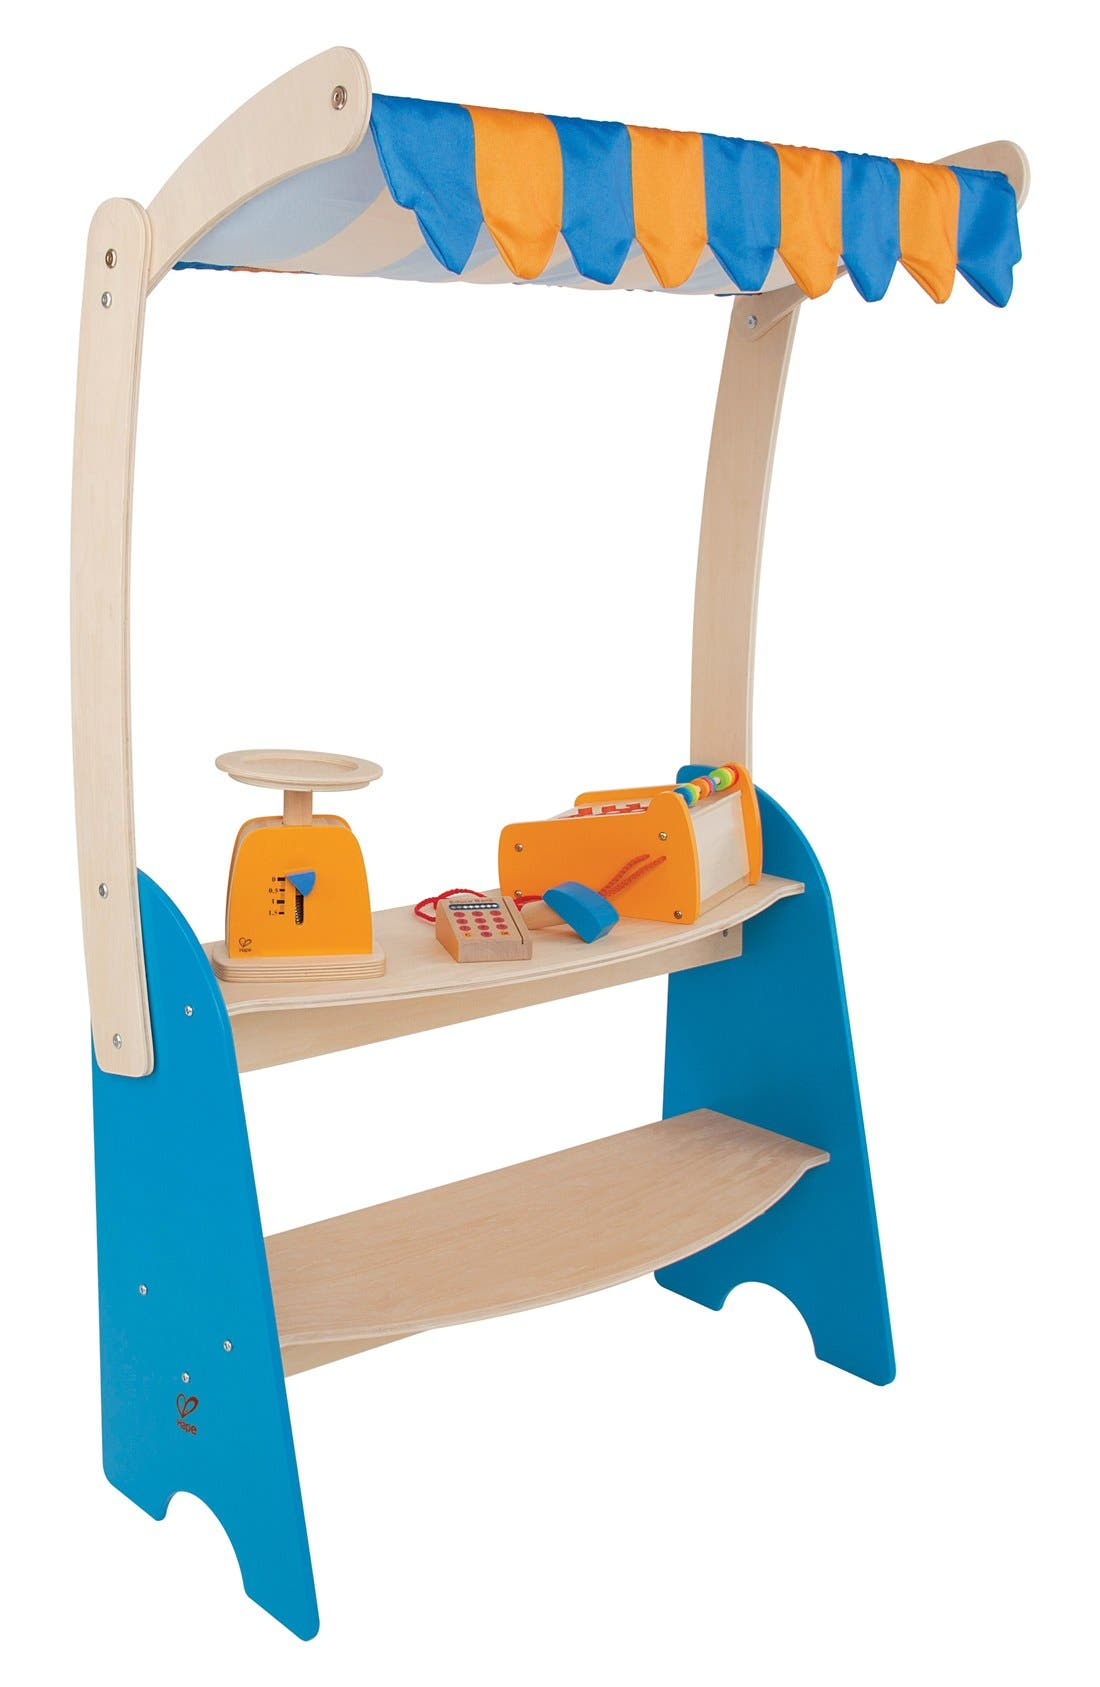 Hape 'Market Checkout' Wooden Play Store